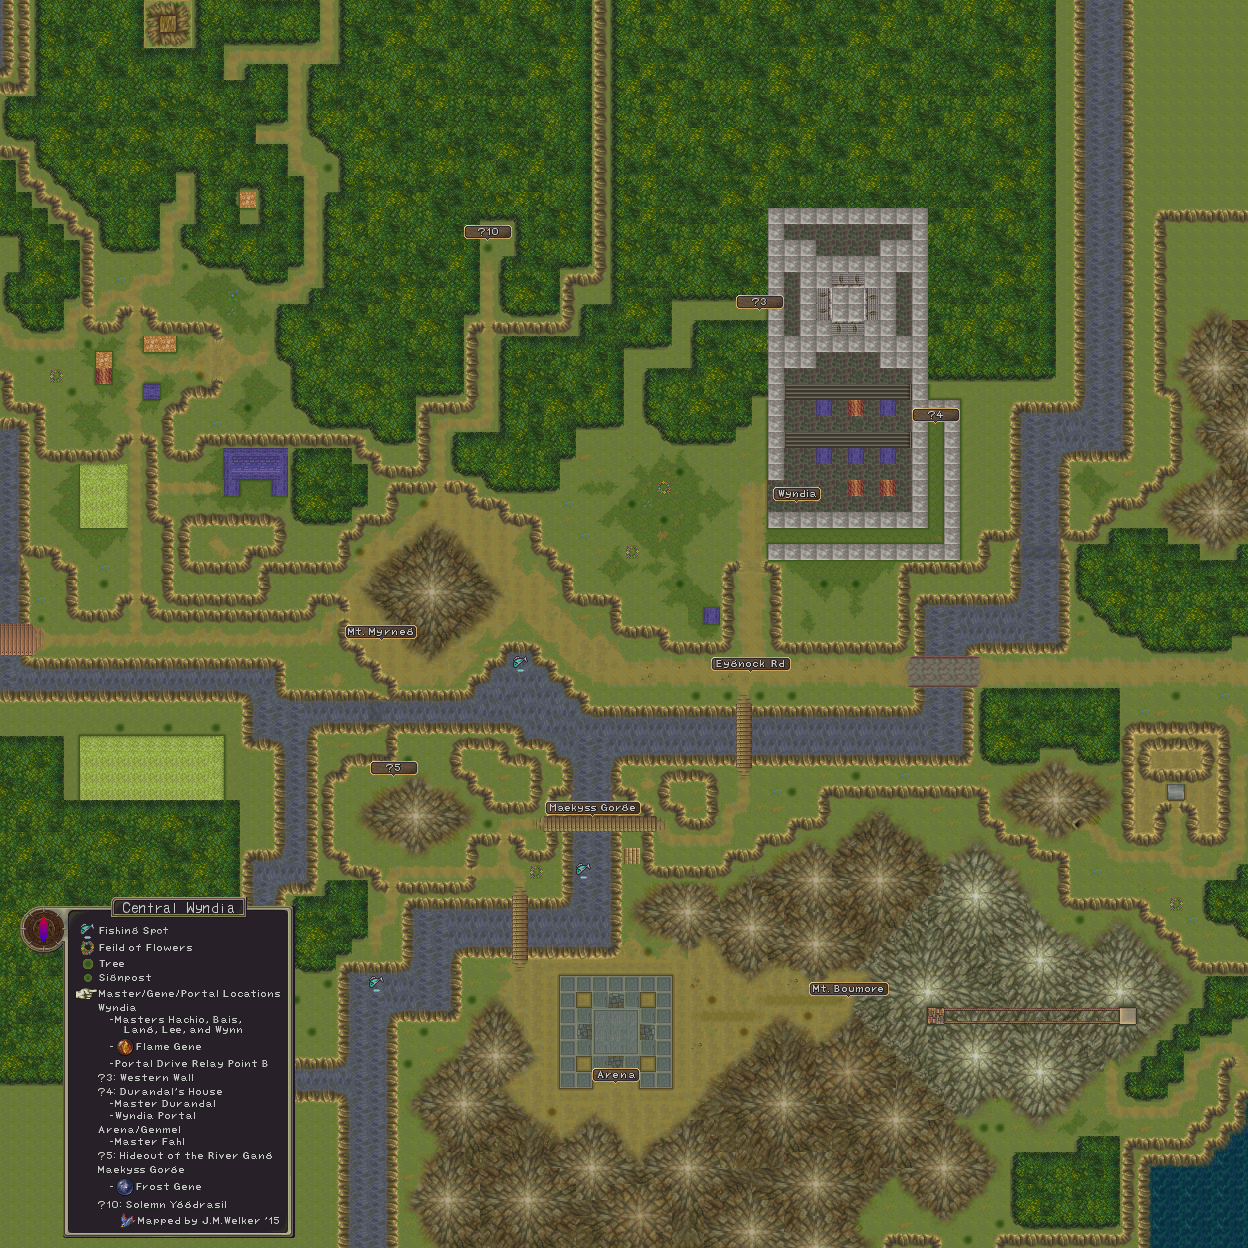 Central Wyndia | Breath of Fire | FANDOM powered by Wikia on resident evil zero map, tales of symphonia map, god of war map, skies of arcadia map, devil may cry map, legend of dragoon map, pool of radiance map, illusion of gaia map, shining force map, chrono trigger map, chrono cross map, legacy of kain map,